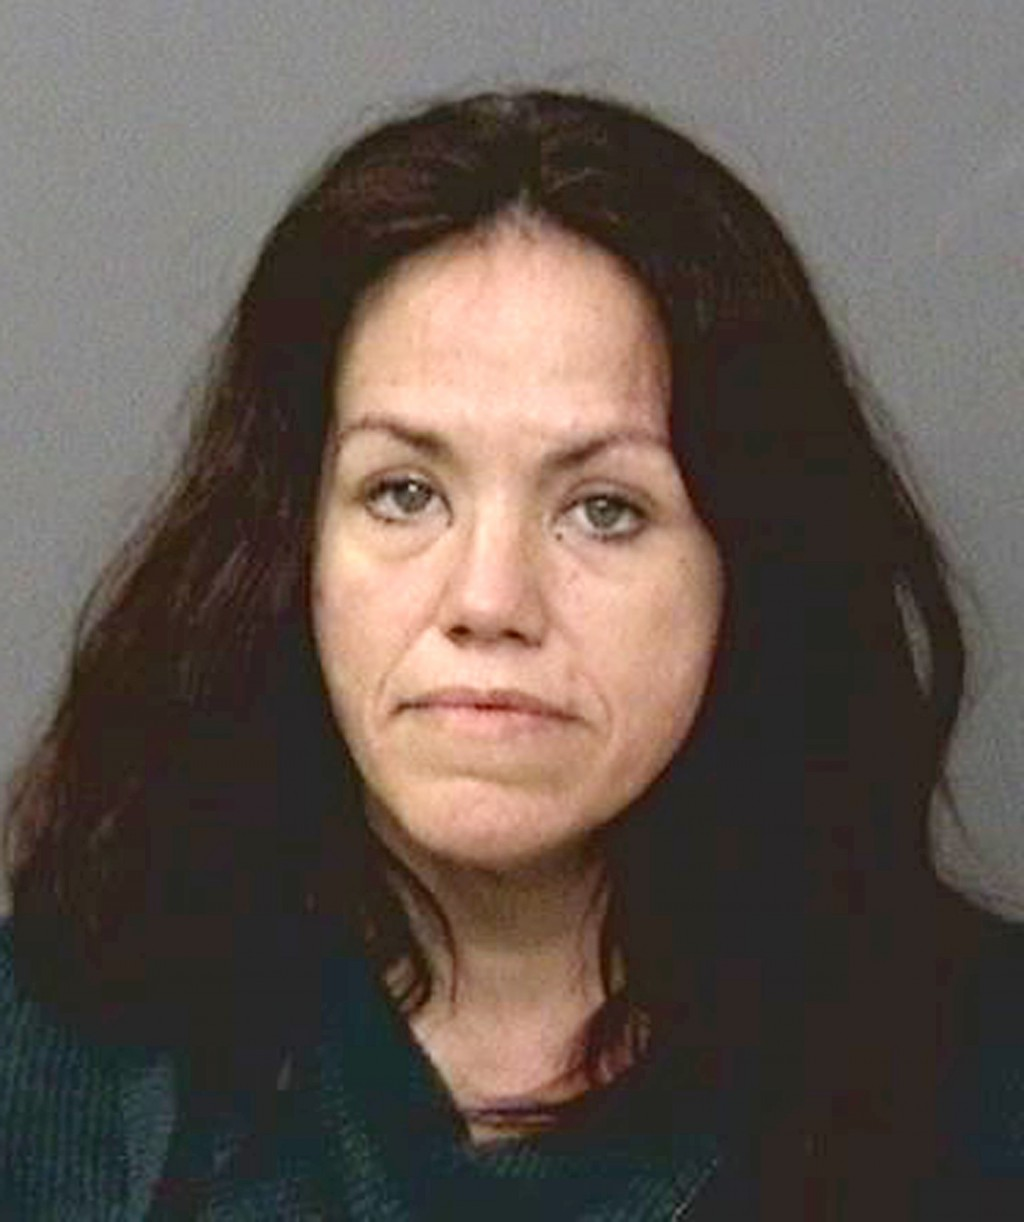 This undated booking photo provided by the Shasta County, Calif., Sheriff's Office shows Shanna Culver, 46, who was arrested after Brian Hawkins confe